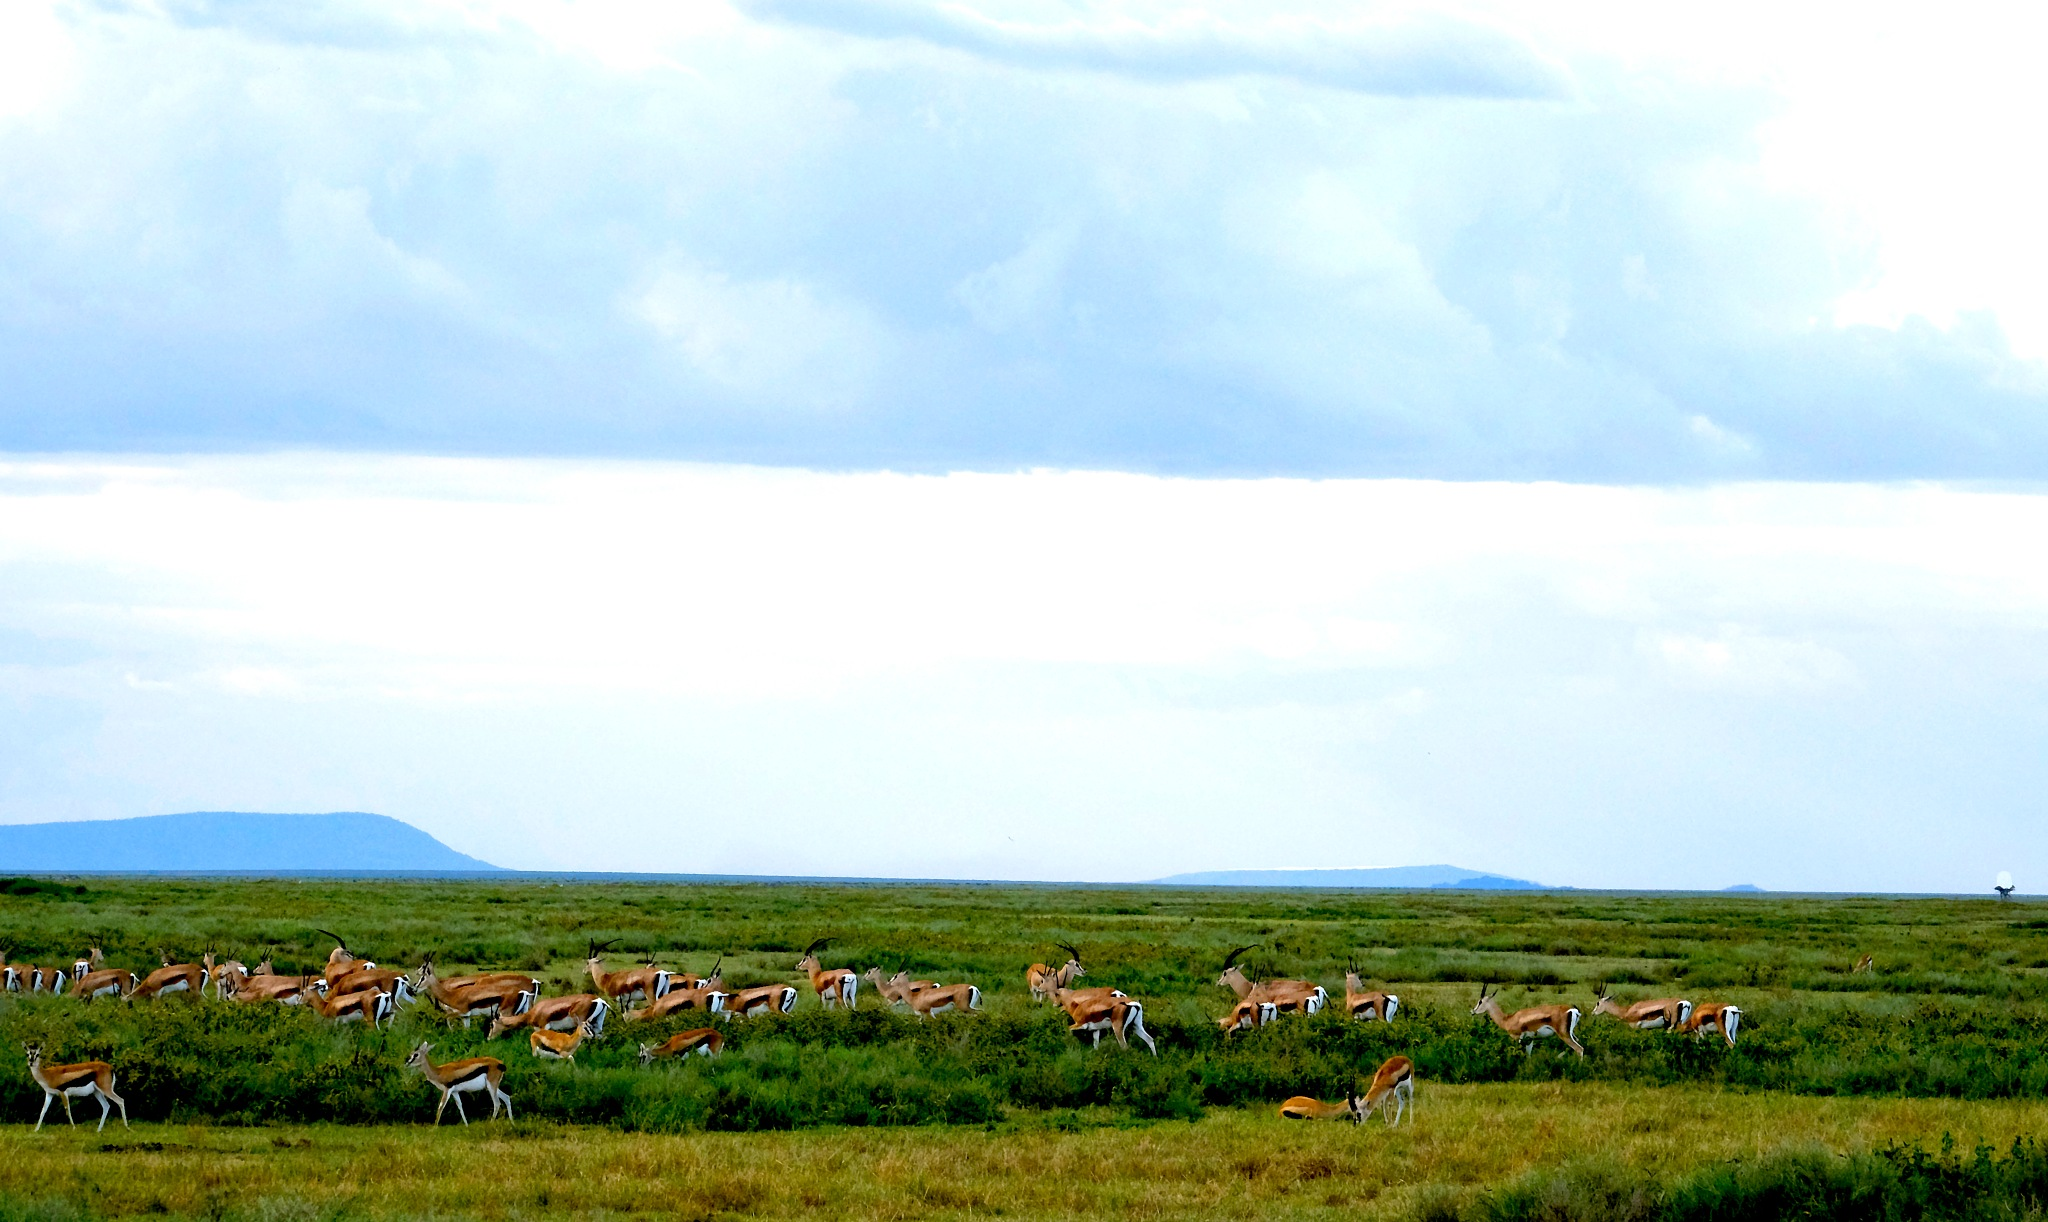 Gazelle-scape by DrSudhir Hasamnis